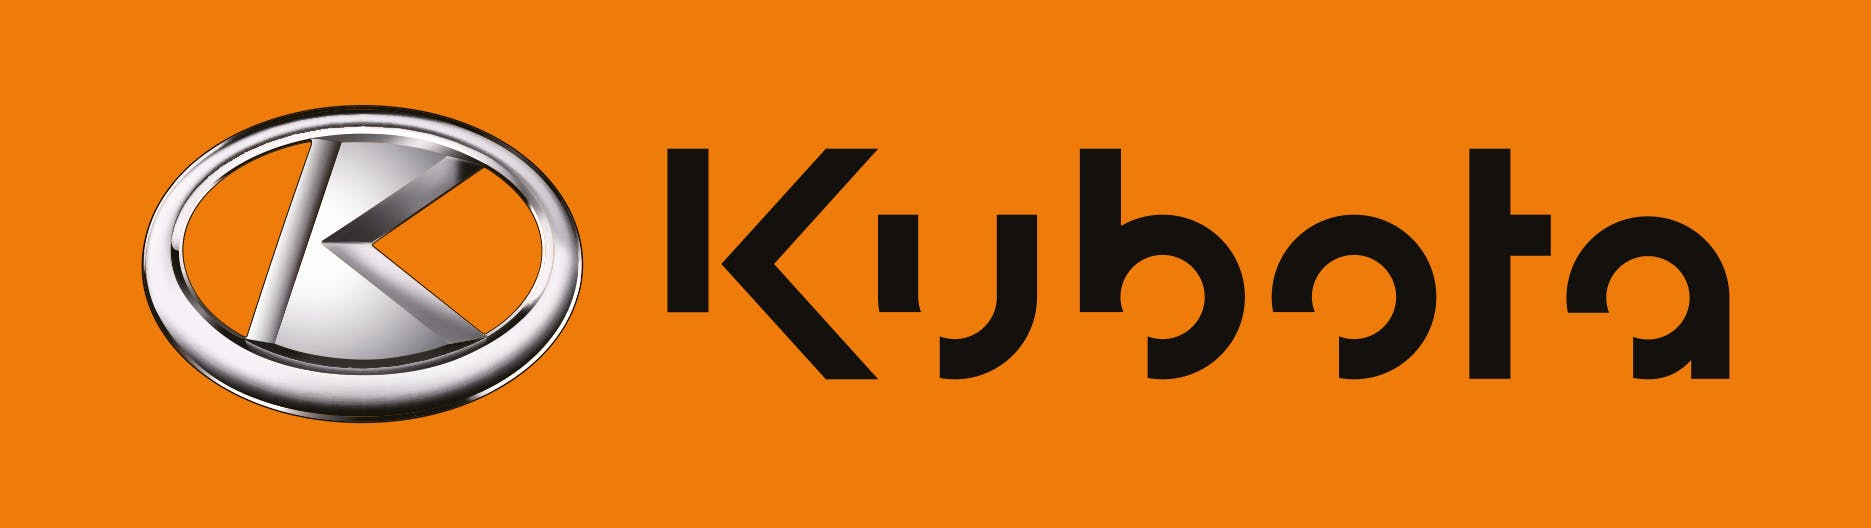 Company logo for 'Kubota Tractor Corporation'.